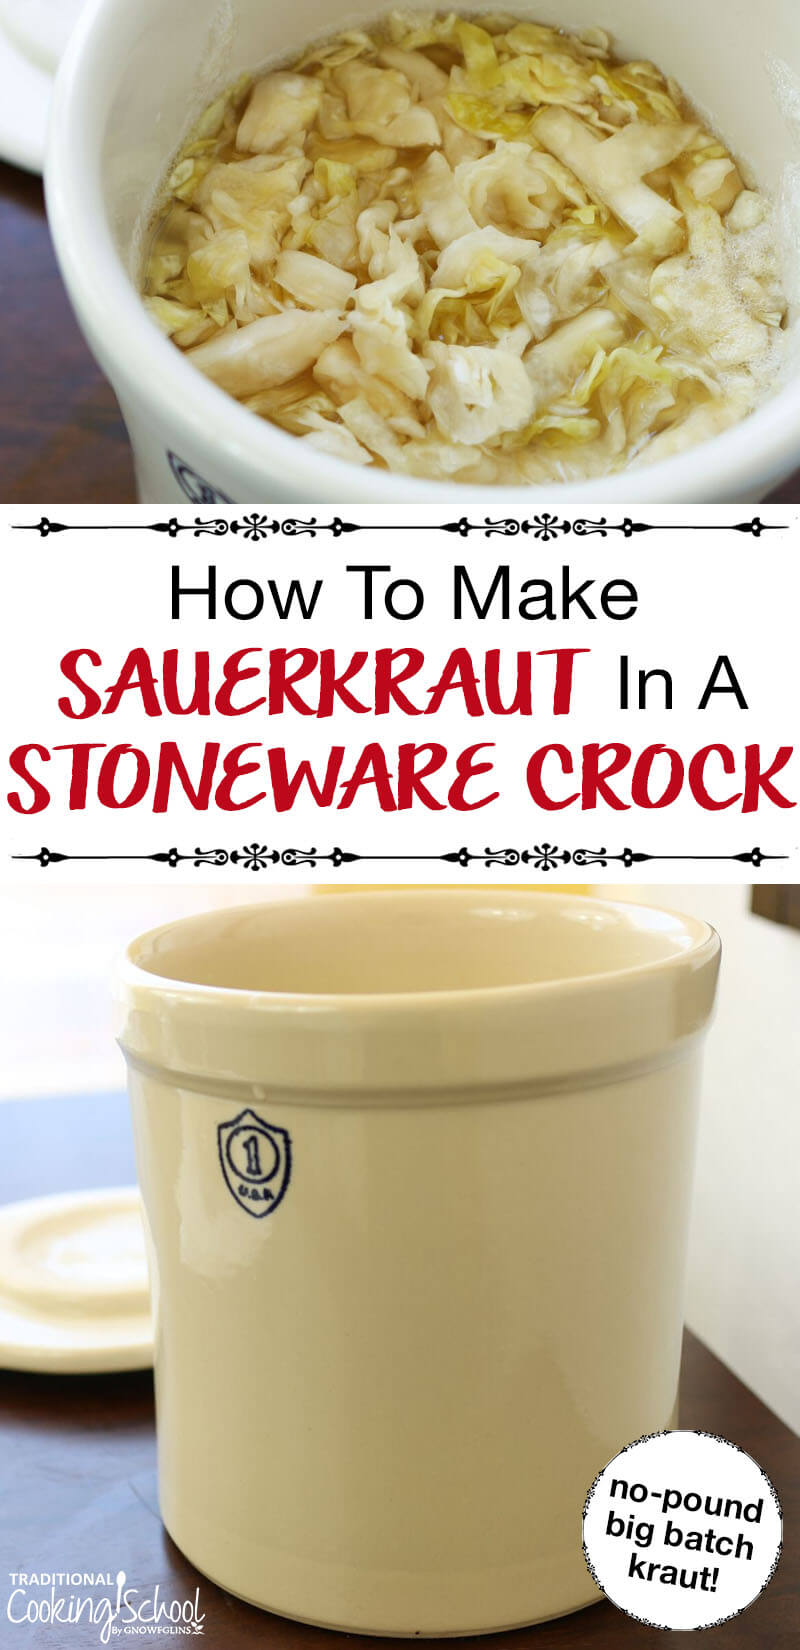 How To Make Sauerkraut In A Stoneware Crock | Homemade sauerkraut in a stoneware crock... it's super fun and beautiful and the ultimate in batch cooking! Not to mention that sauerkraut is one of the best foods for a healthy gut and digestion. | TraditionalCookingSchool.com